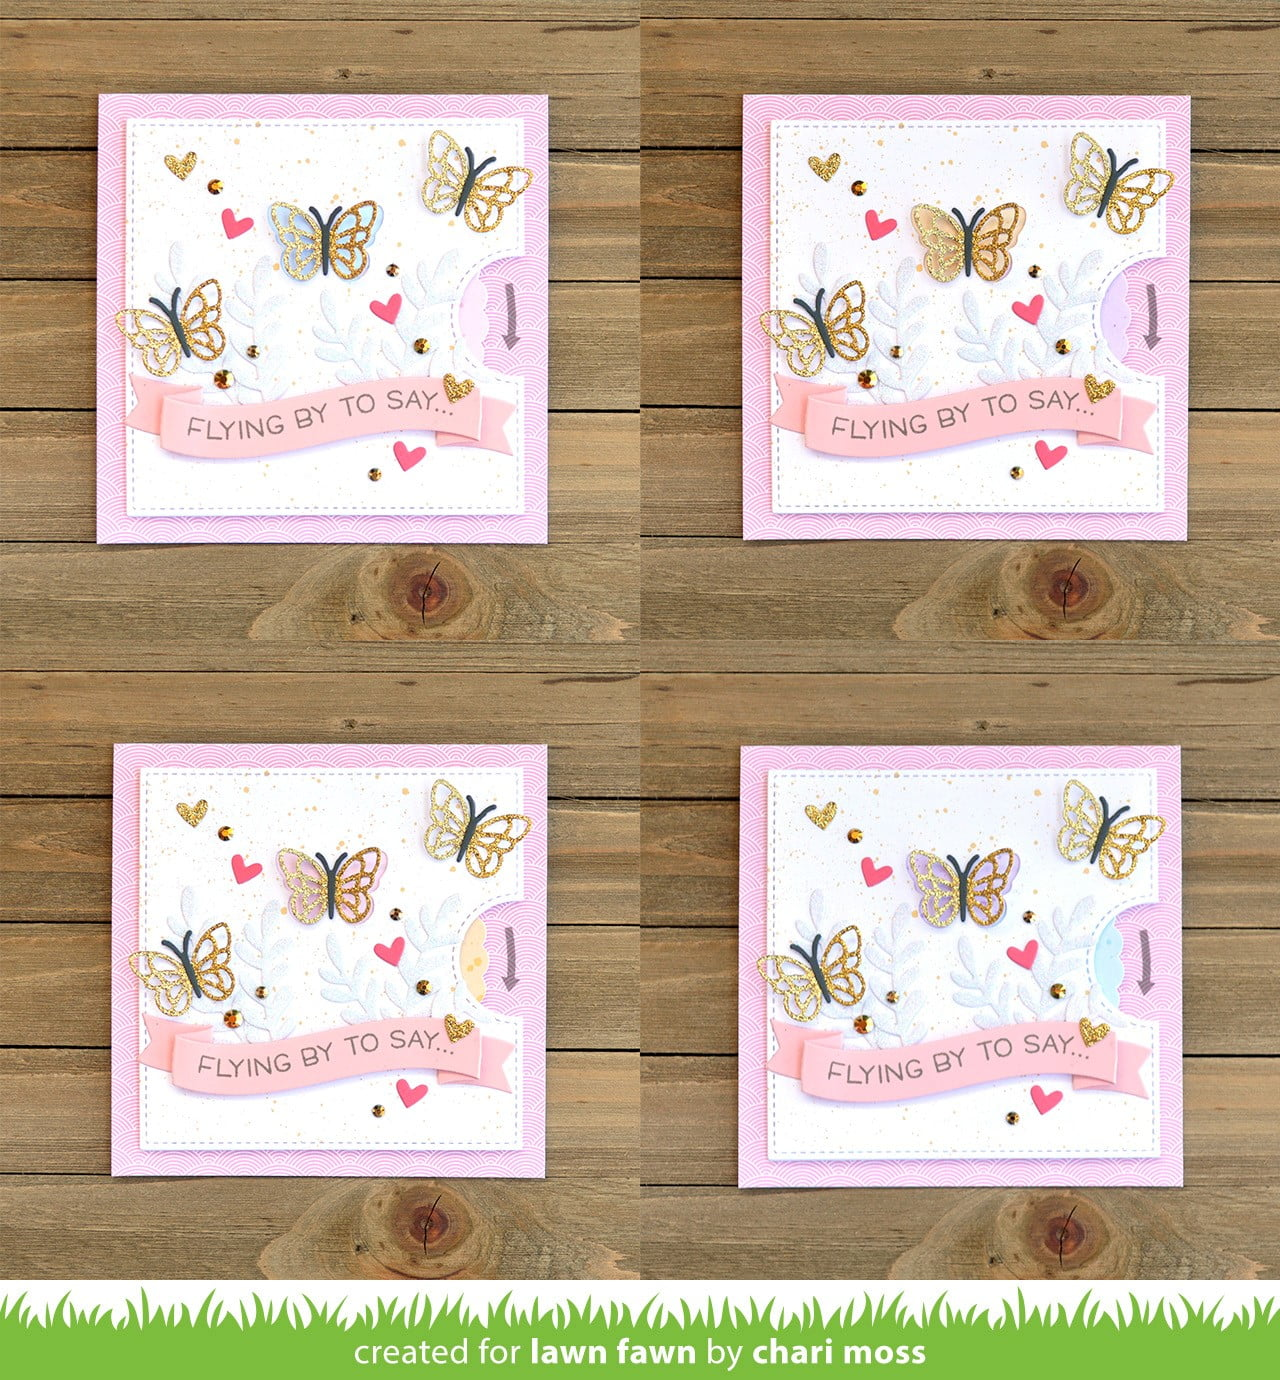 Card created by Chari Moss for Lawn Fawn